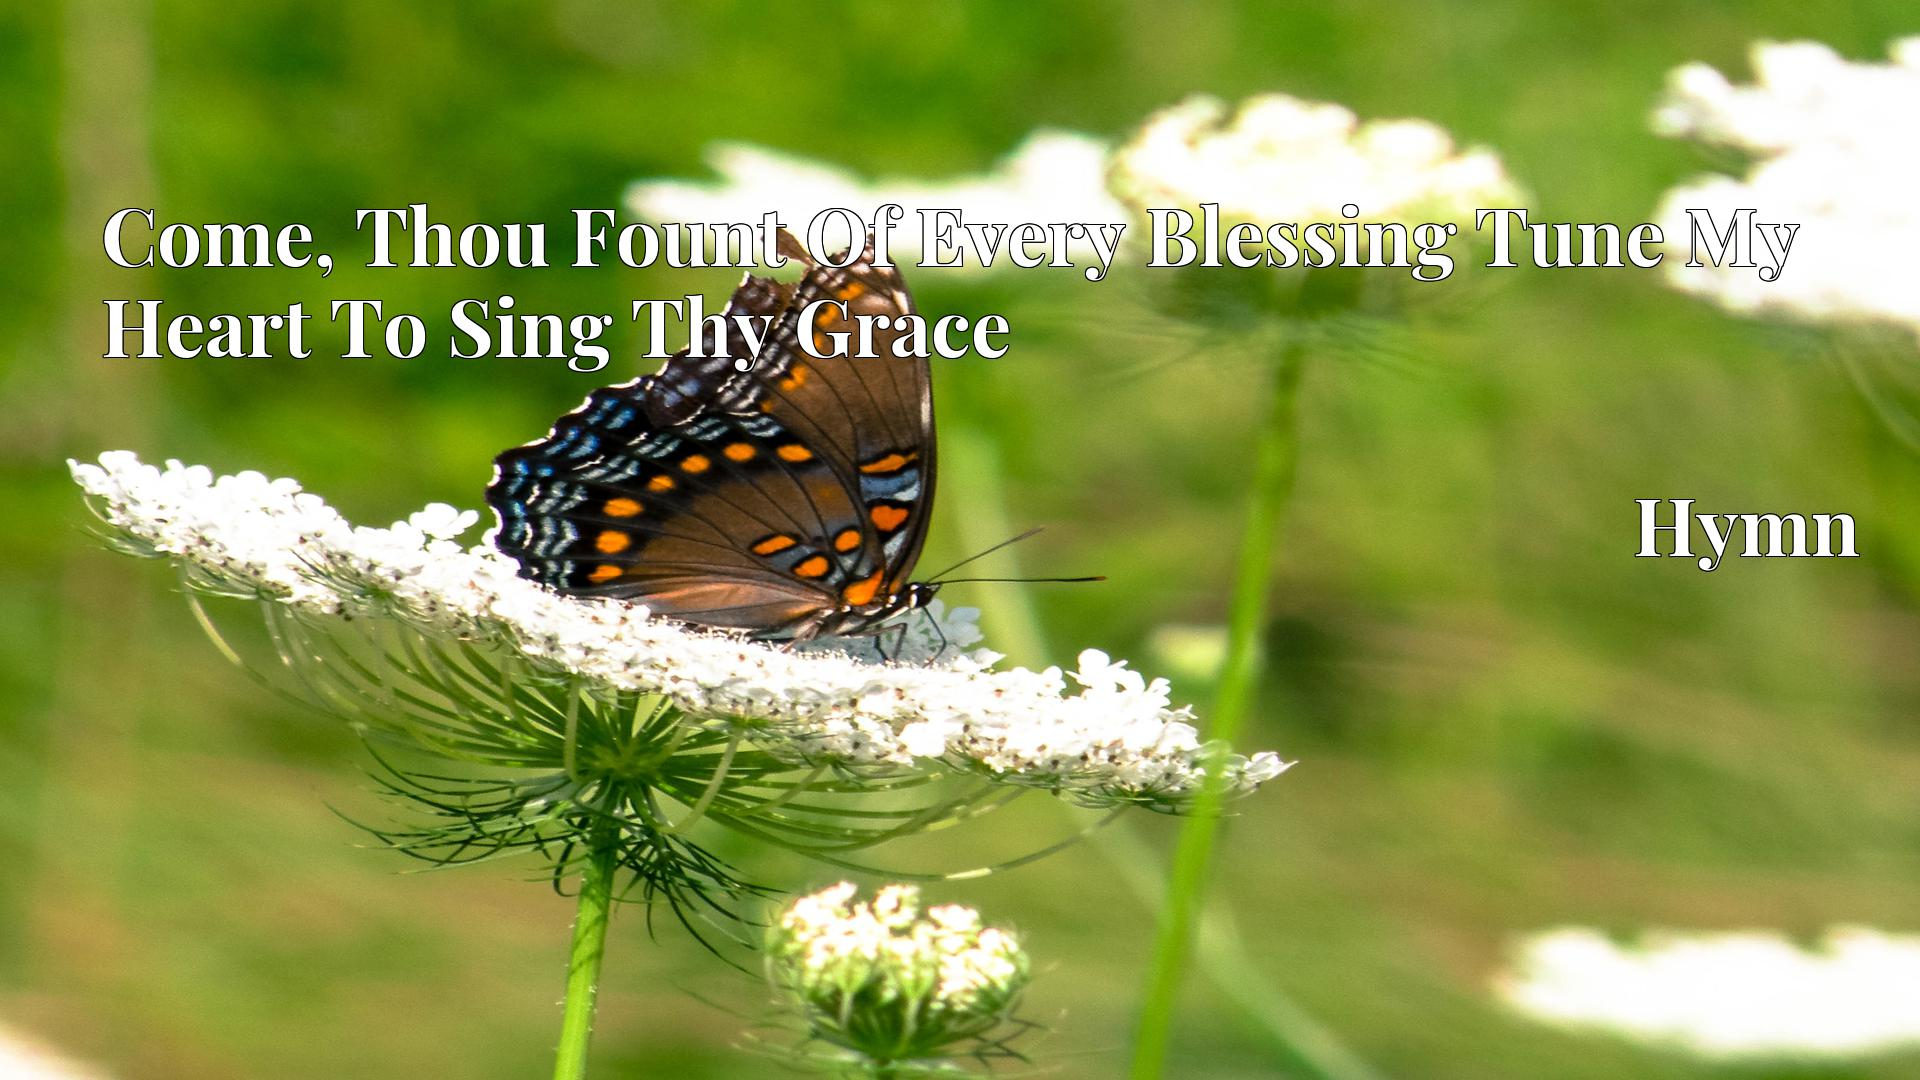 Come, Thou Fount Of Every Blessing Tune My Heart To Sing Thy Grace - Hymn